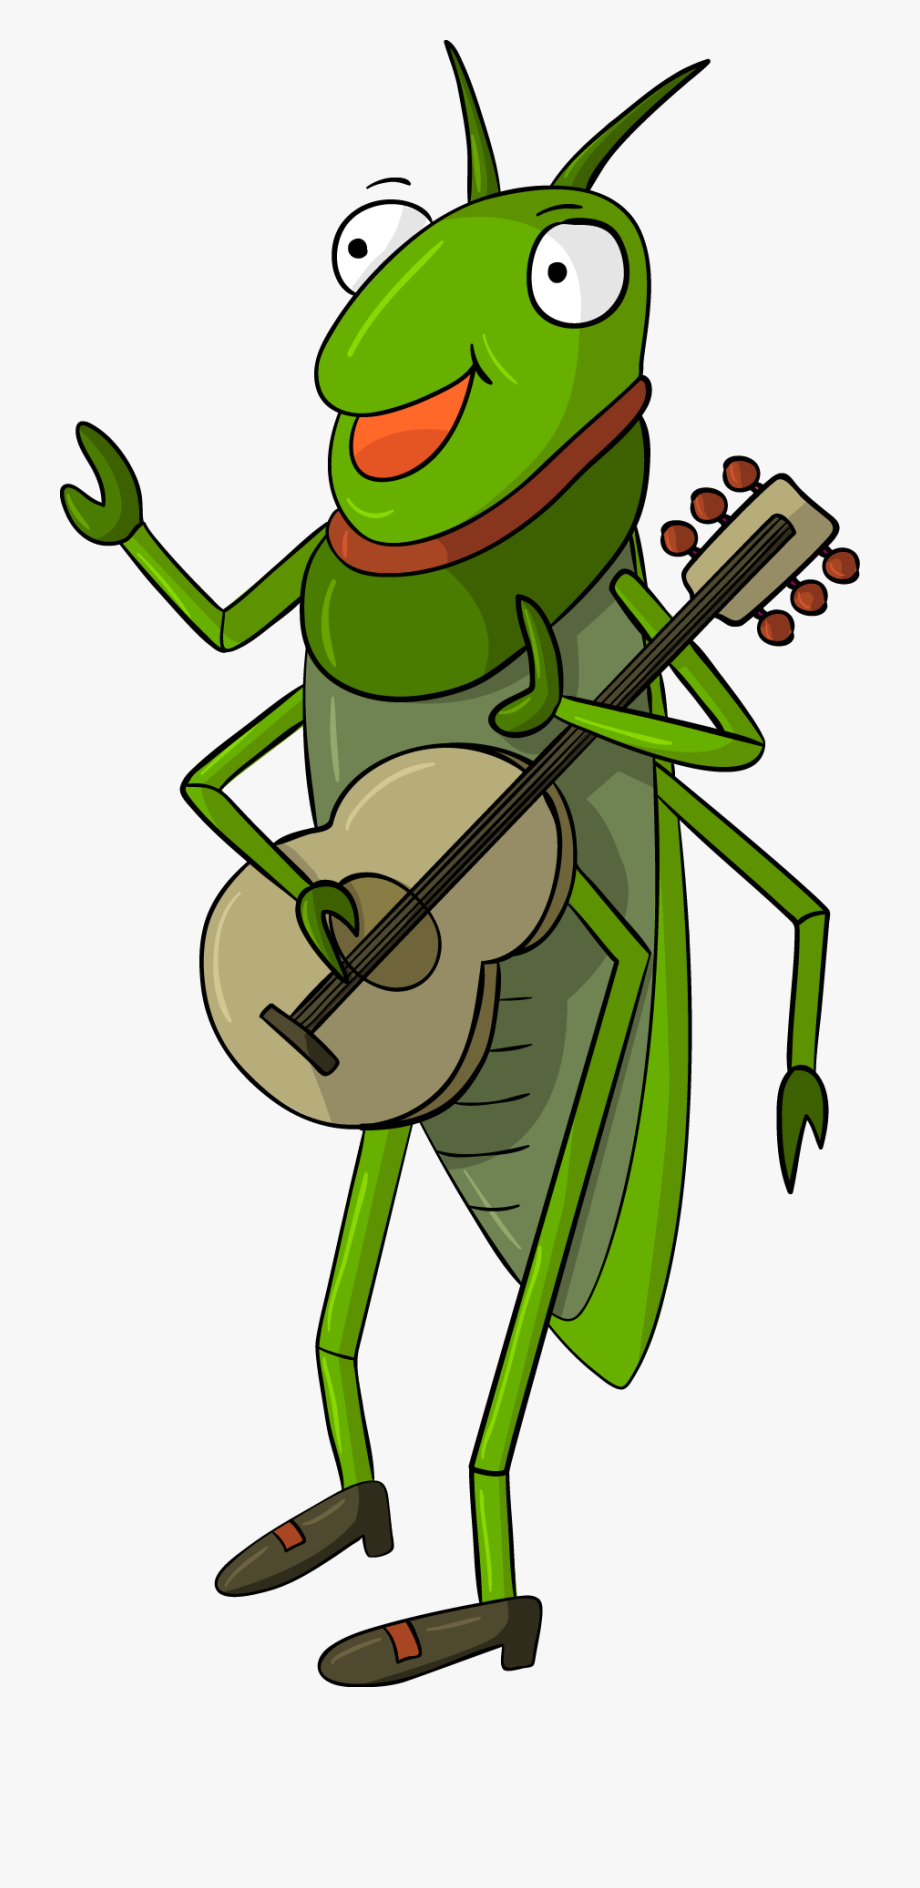 Cricket Grasshopper Illustration Playing Guitar Insect.